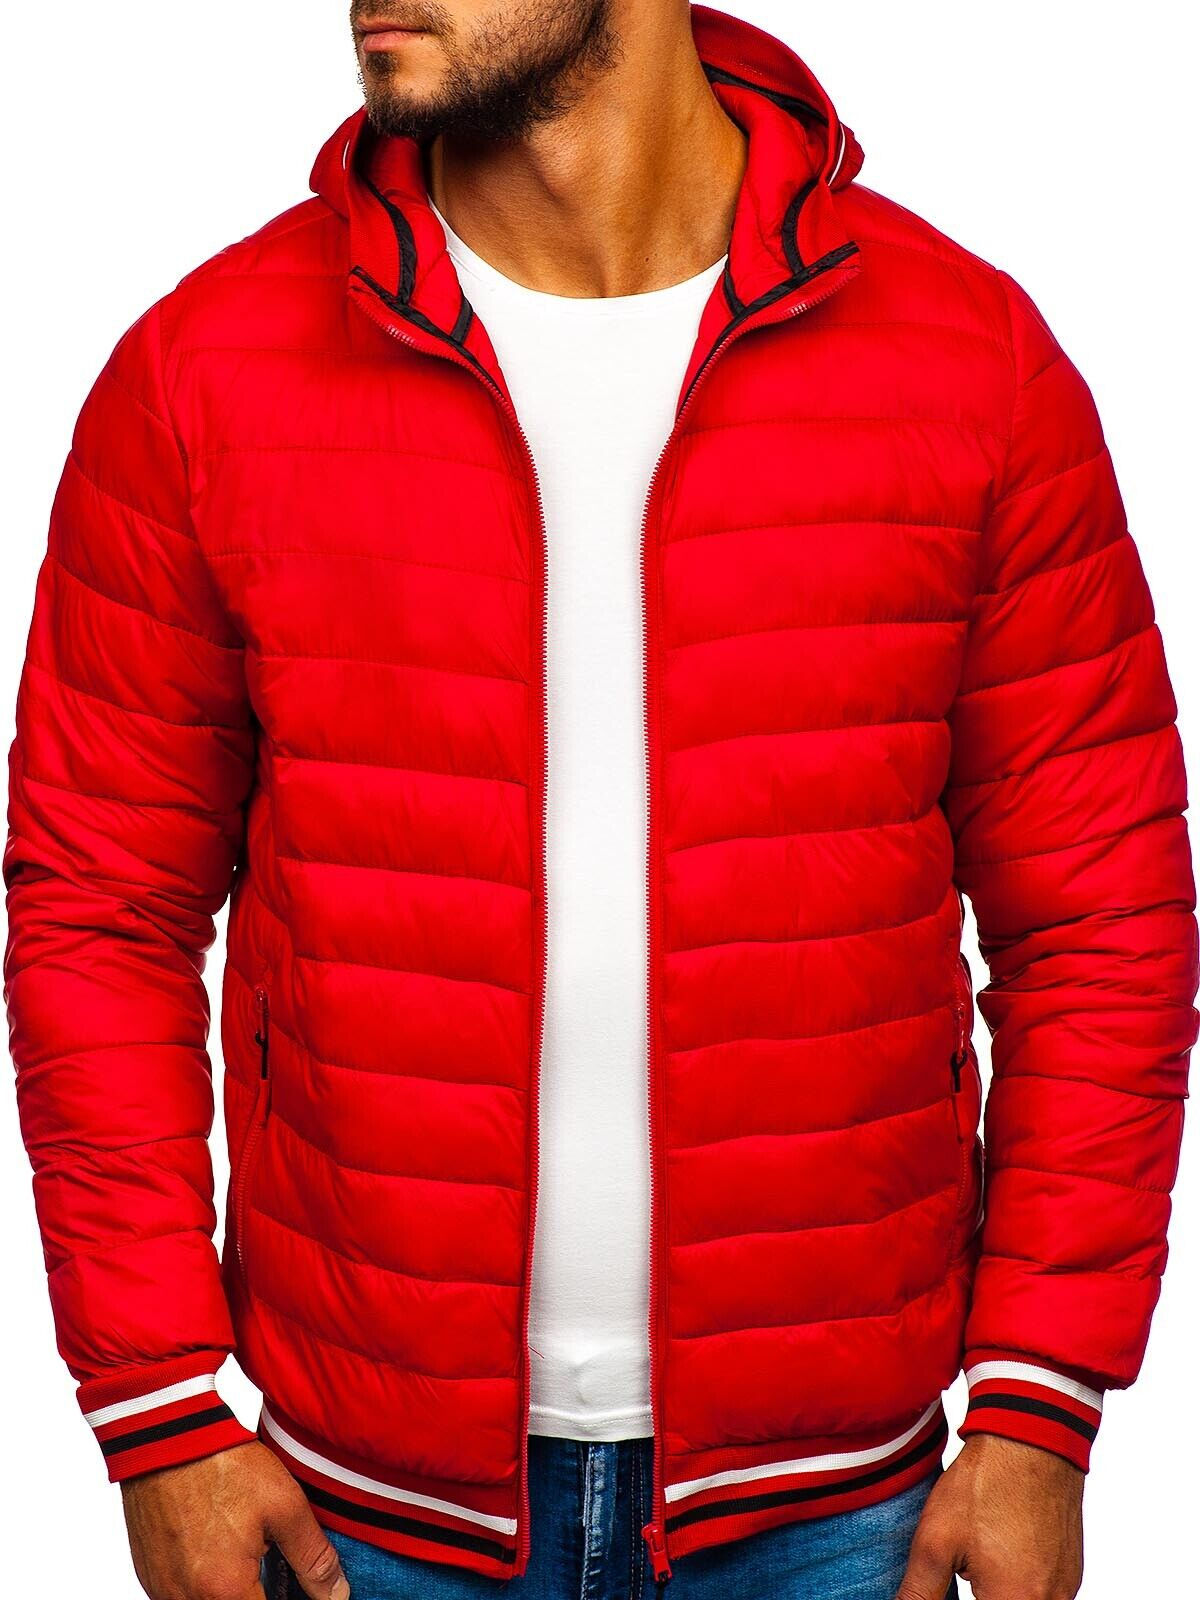 J.Style LY1009 Rot